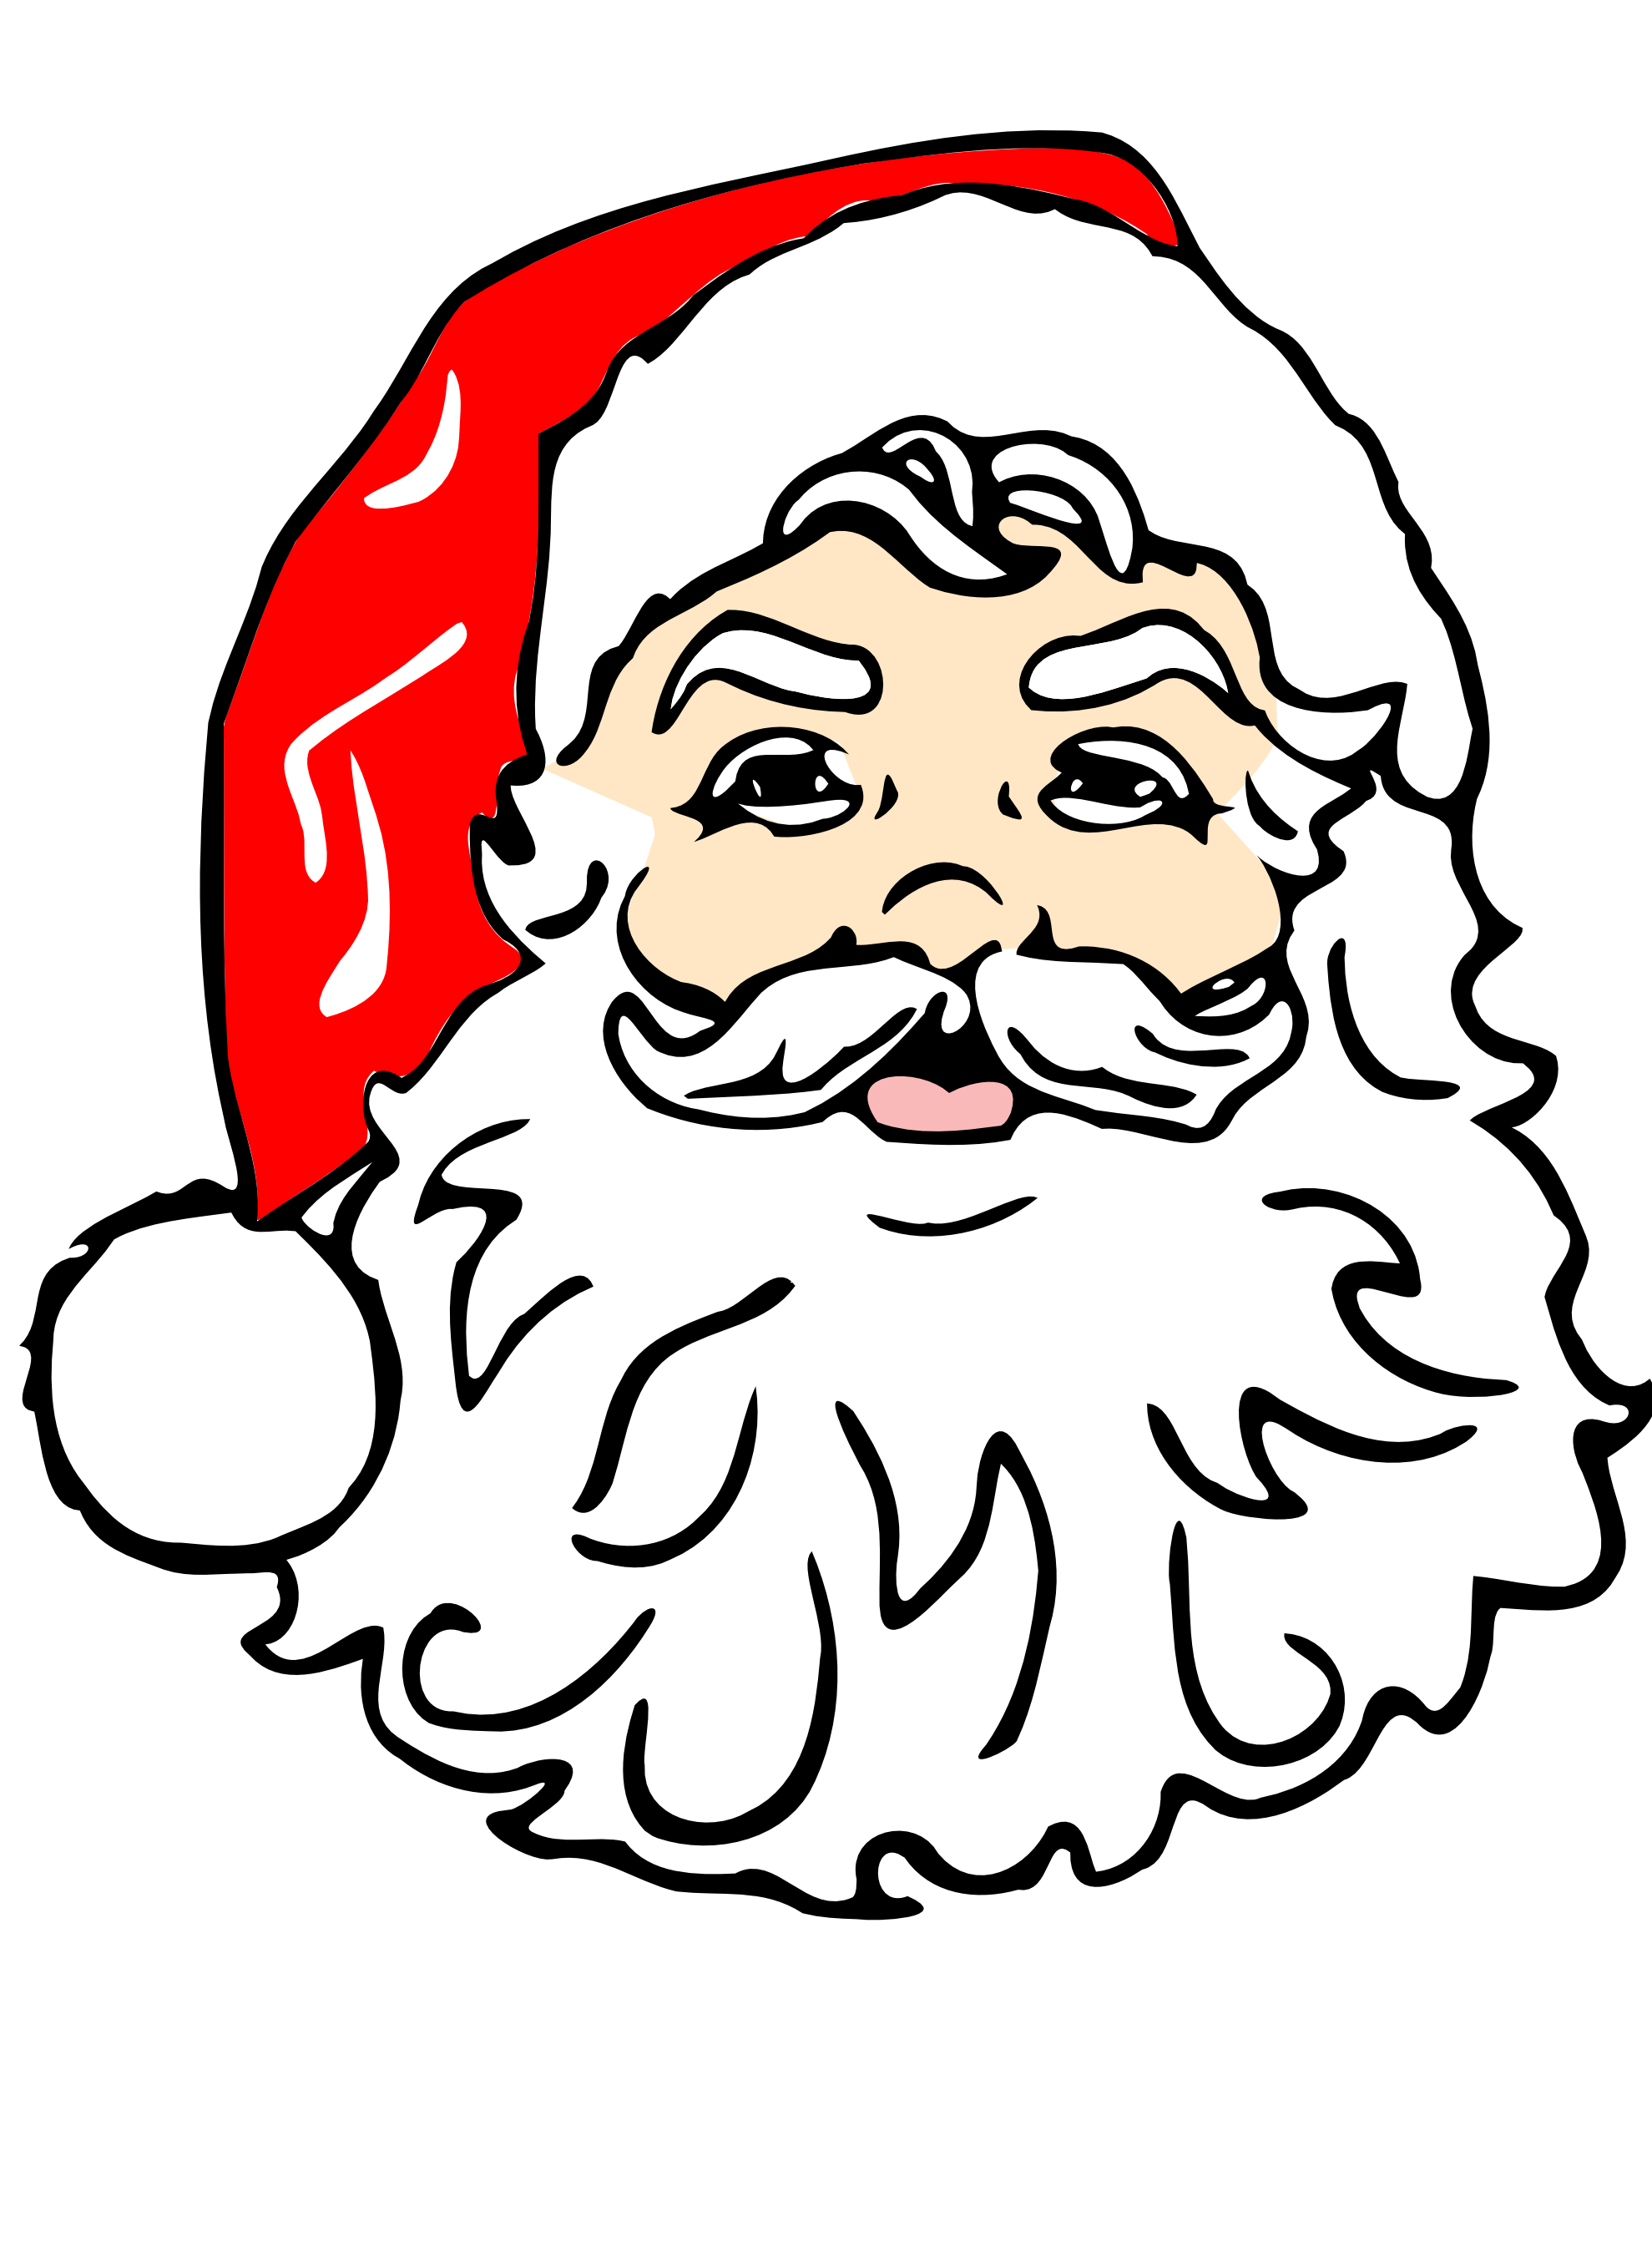 Drawing elves santa. Clip art with his